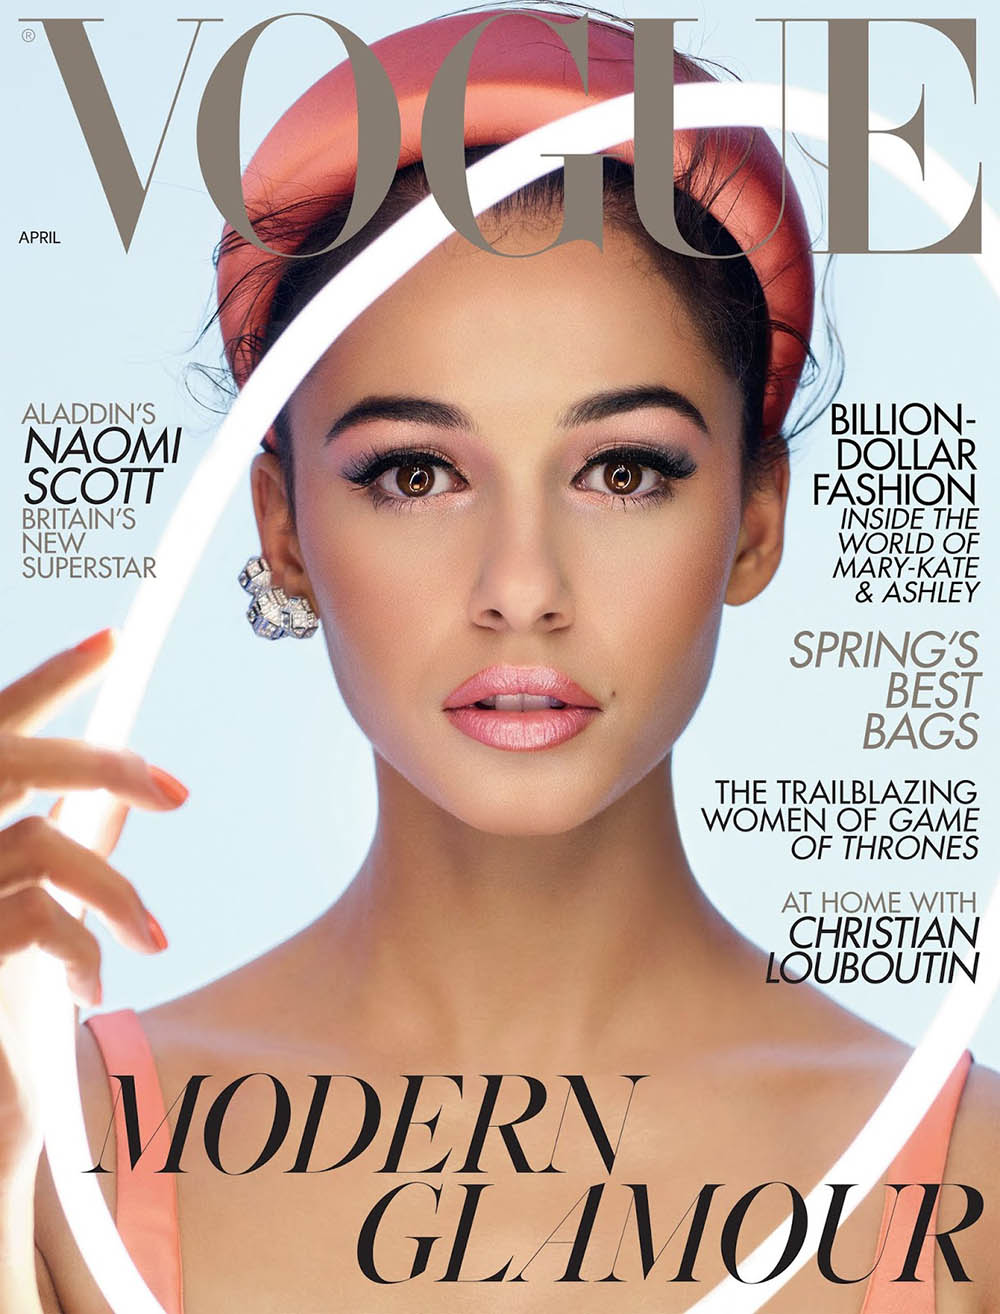 Naomi Scott covers British Vogue April 2019 by Nick Knight